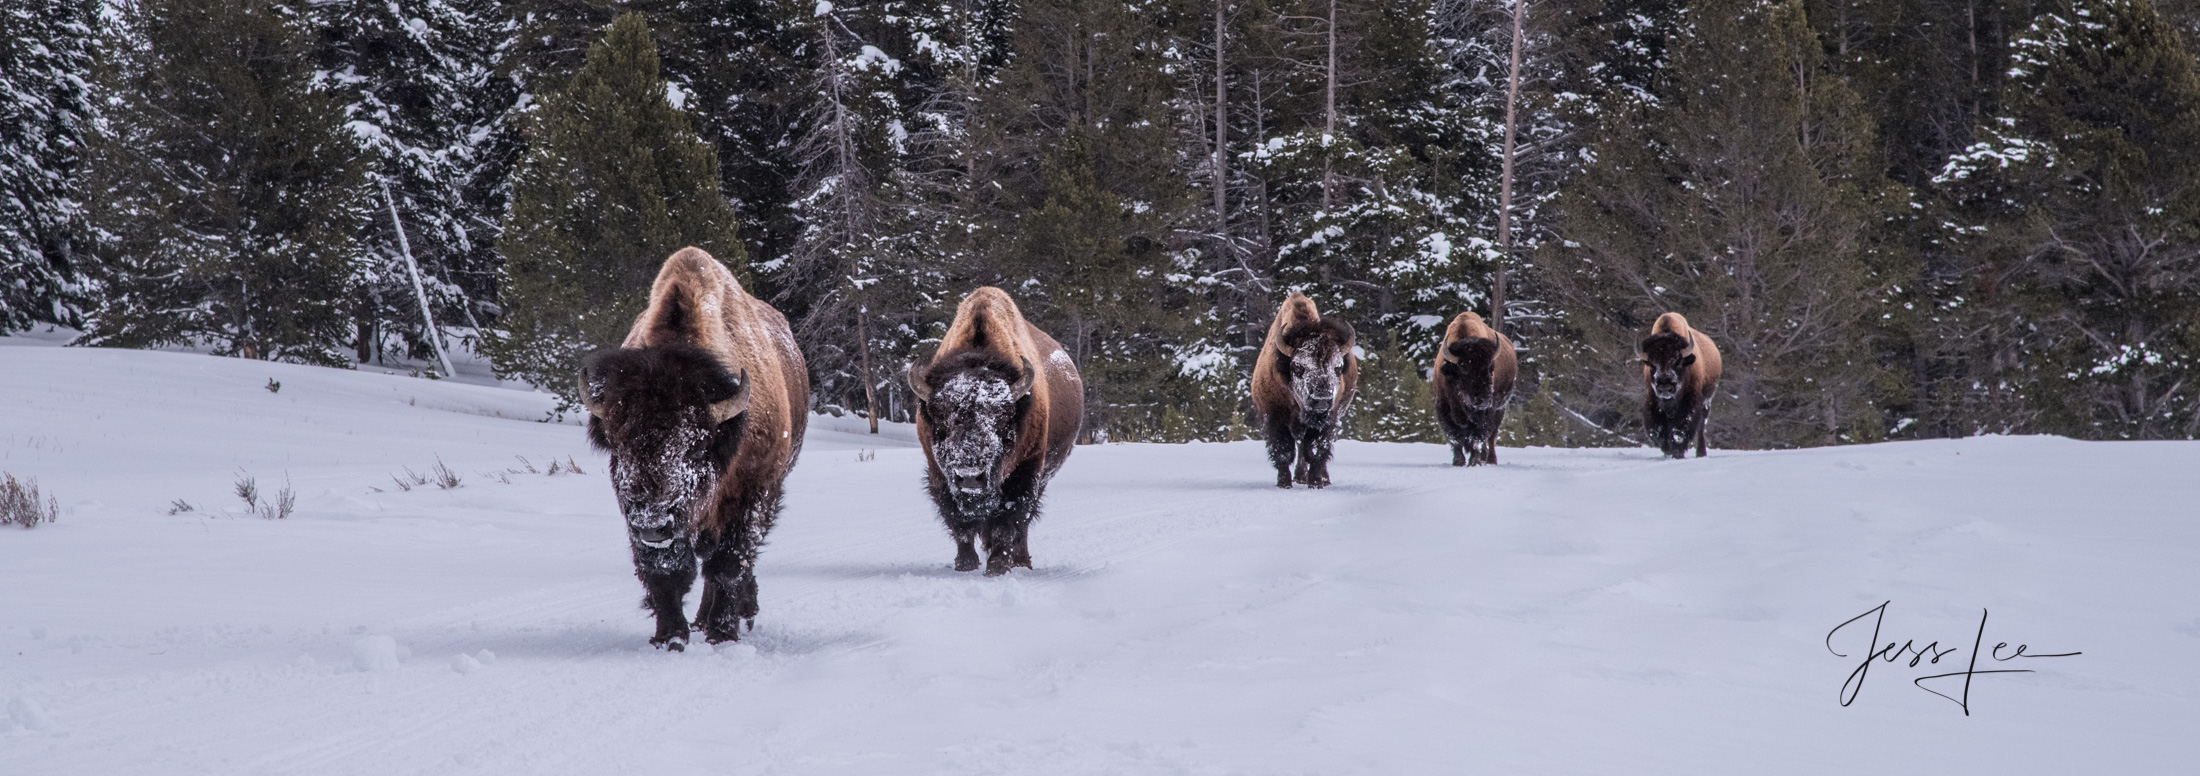 Yellowstone Bull Bison lined up walking in winter snow with snow on there face.